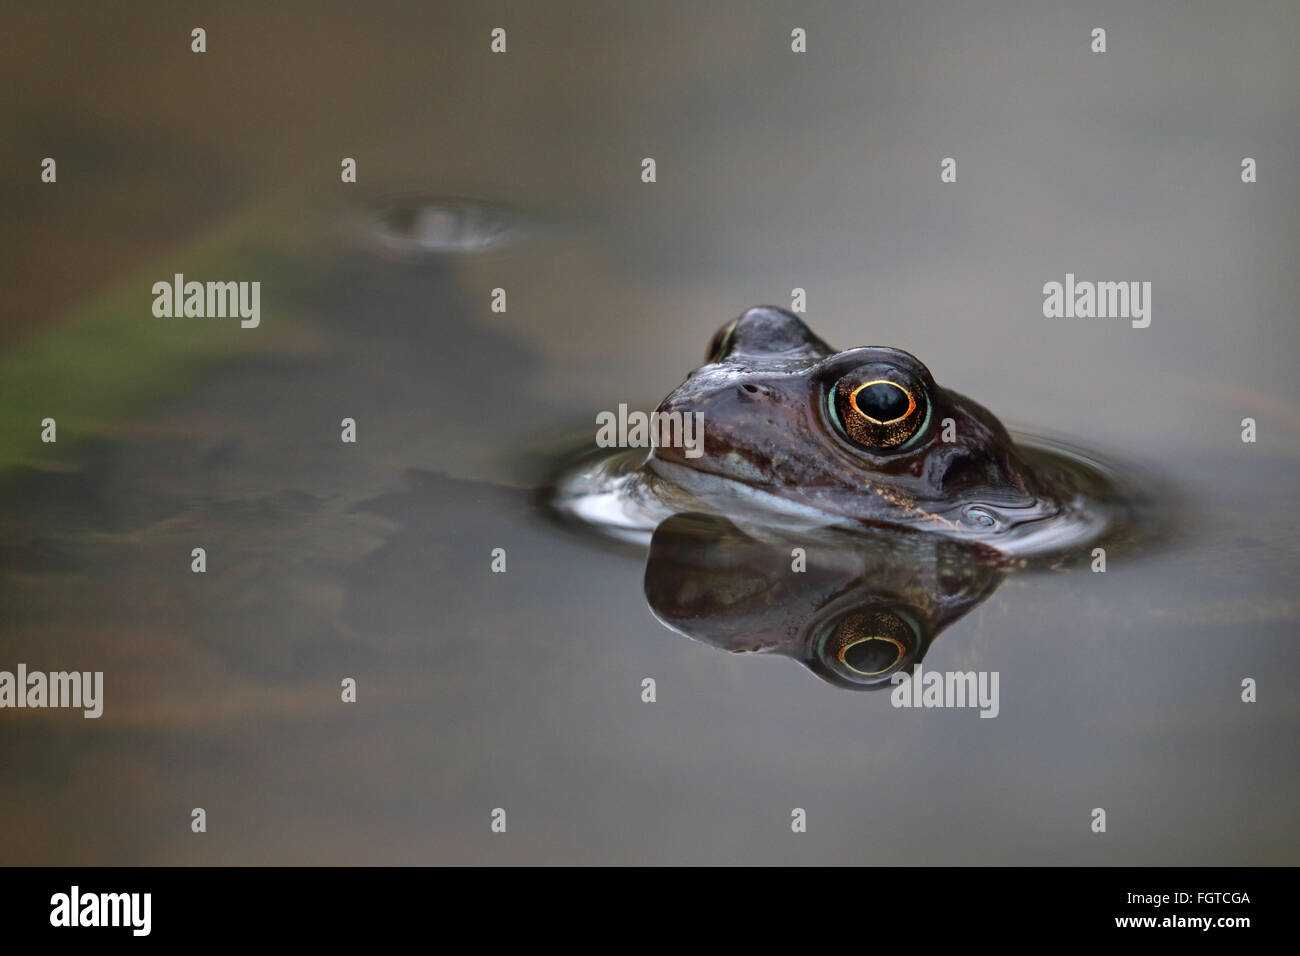 Common Frog Rana temporaria in calm pond with silver smooth light and reflection - Stock Image